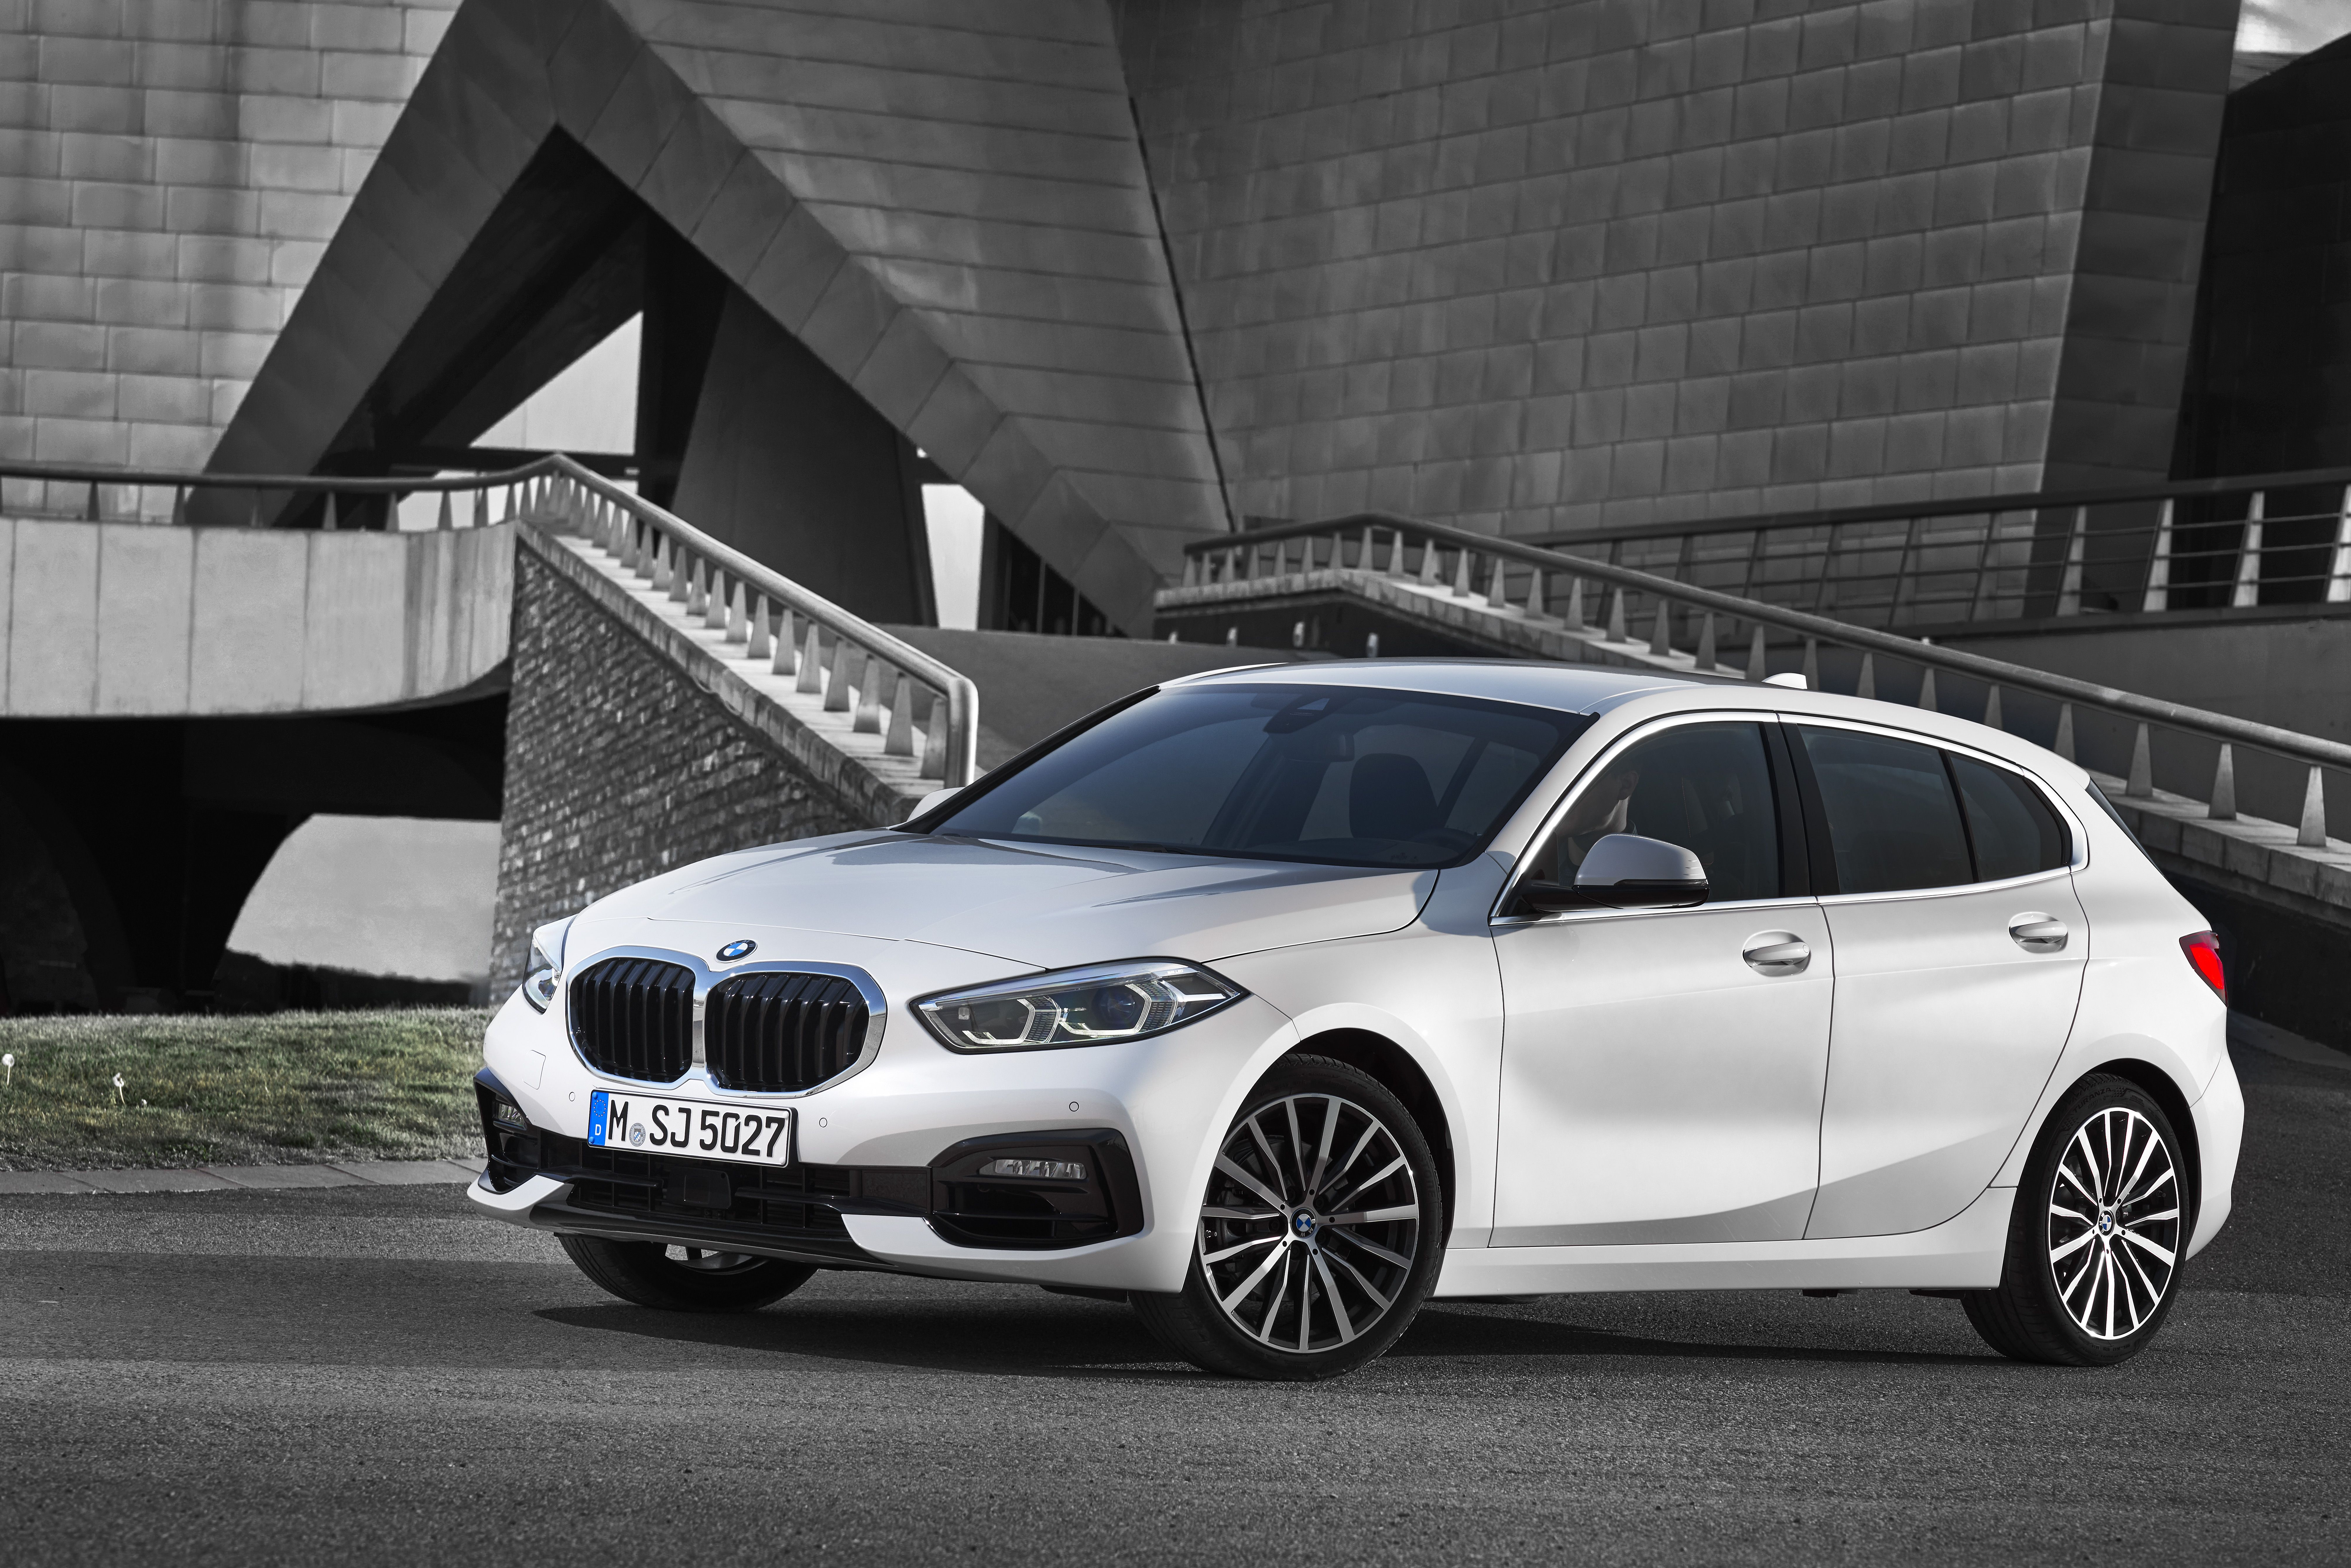 Bmw F40 118i Hatchback Sportline Mperformance Xdrive